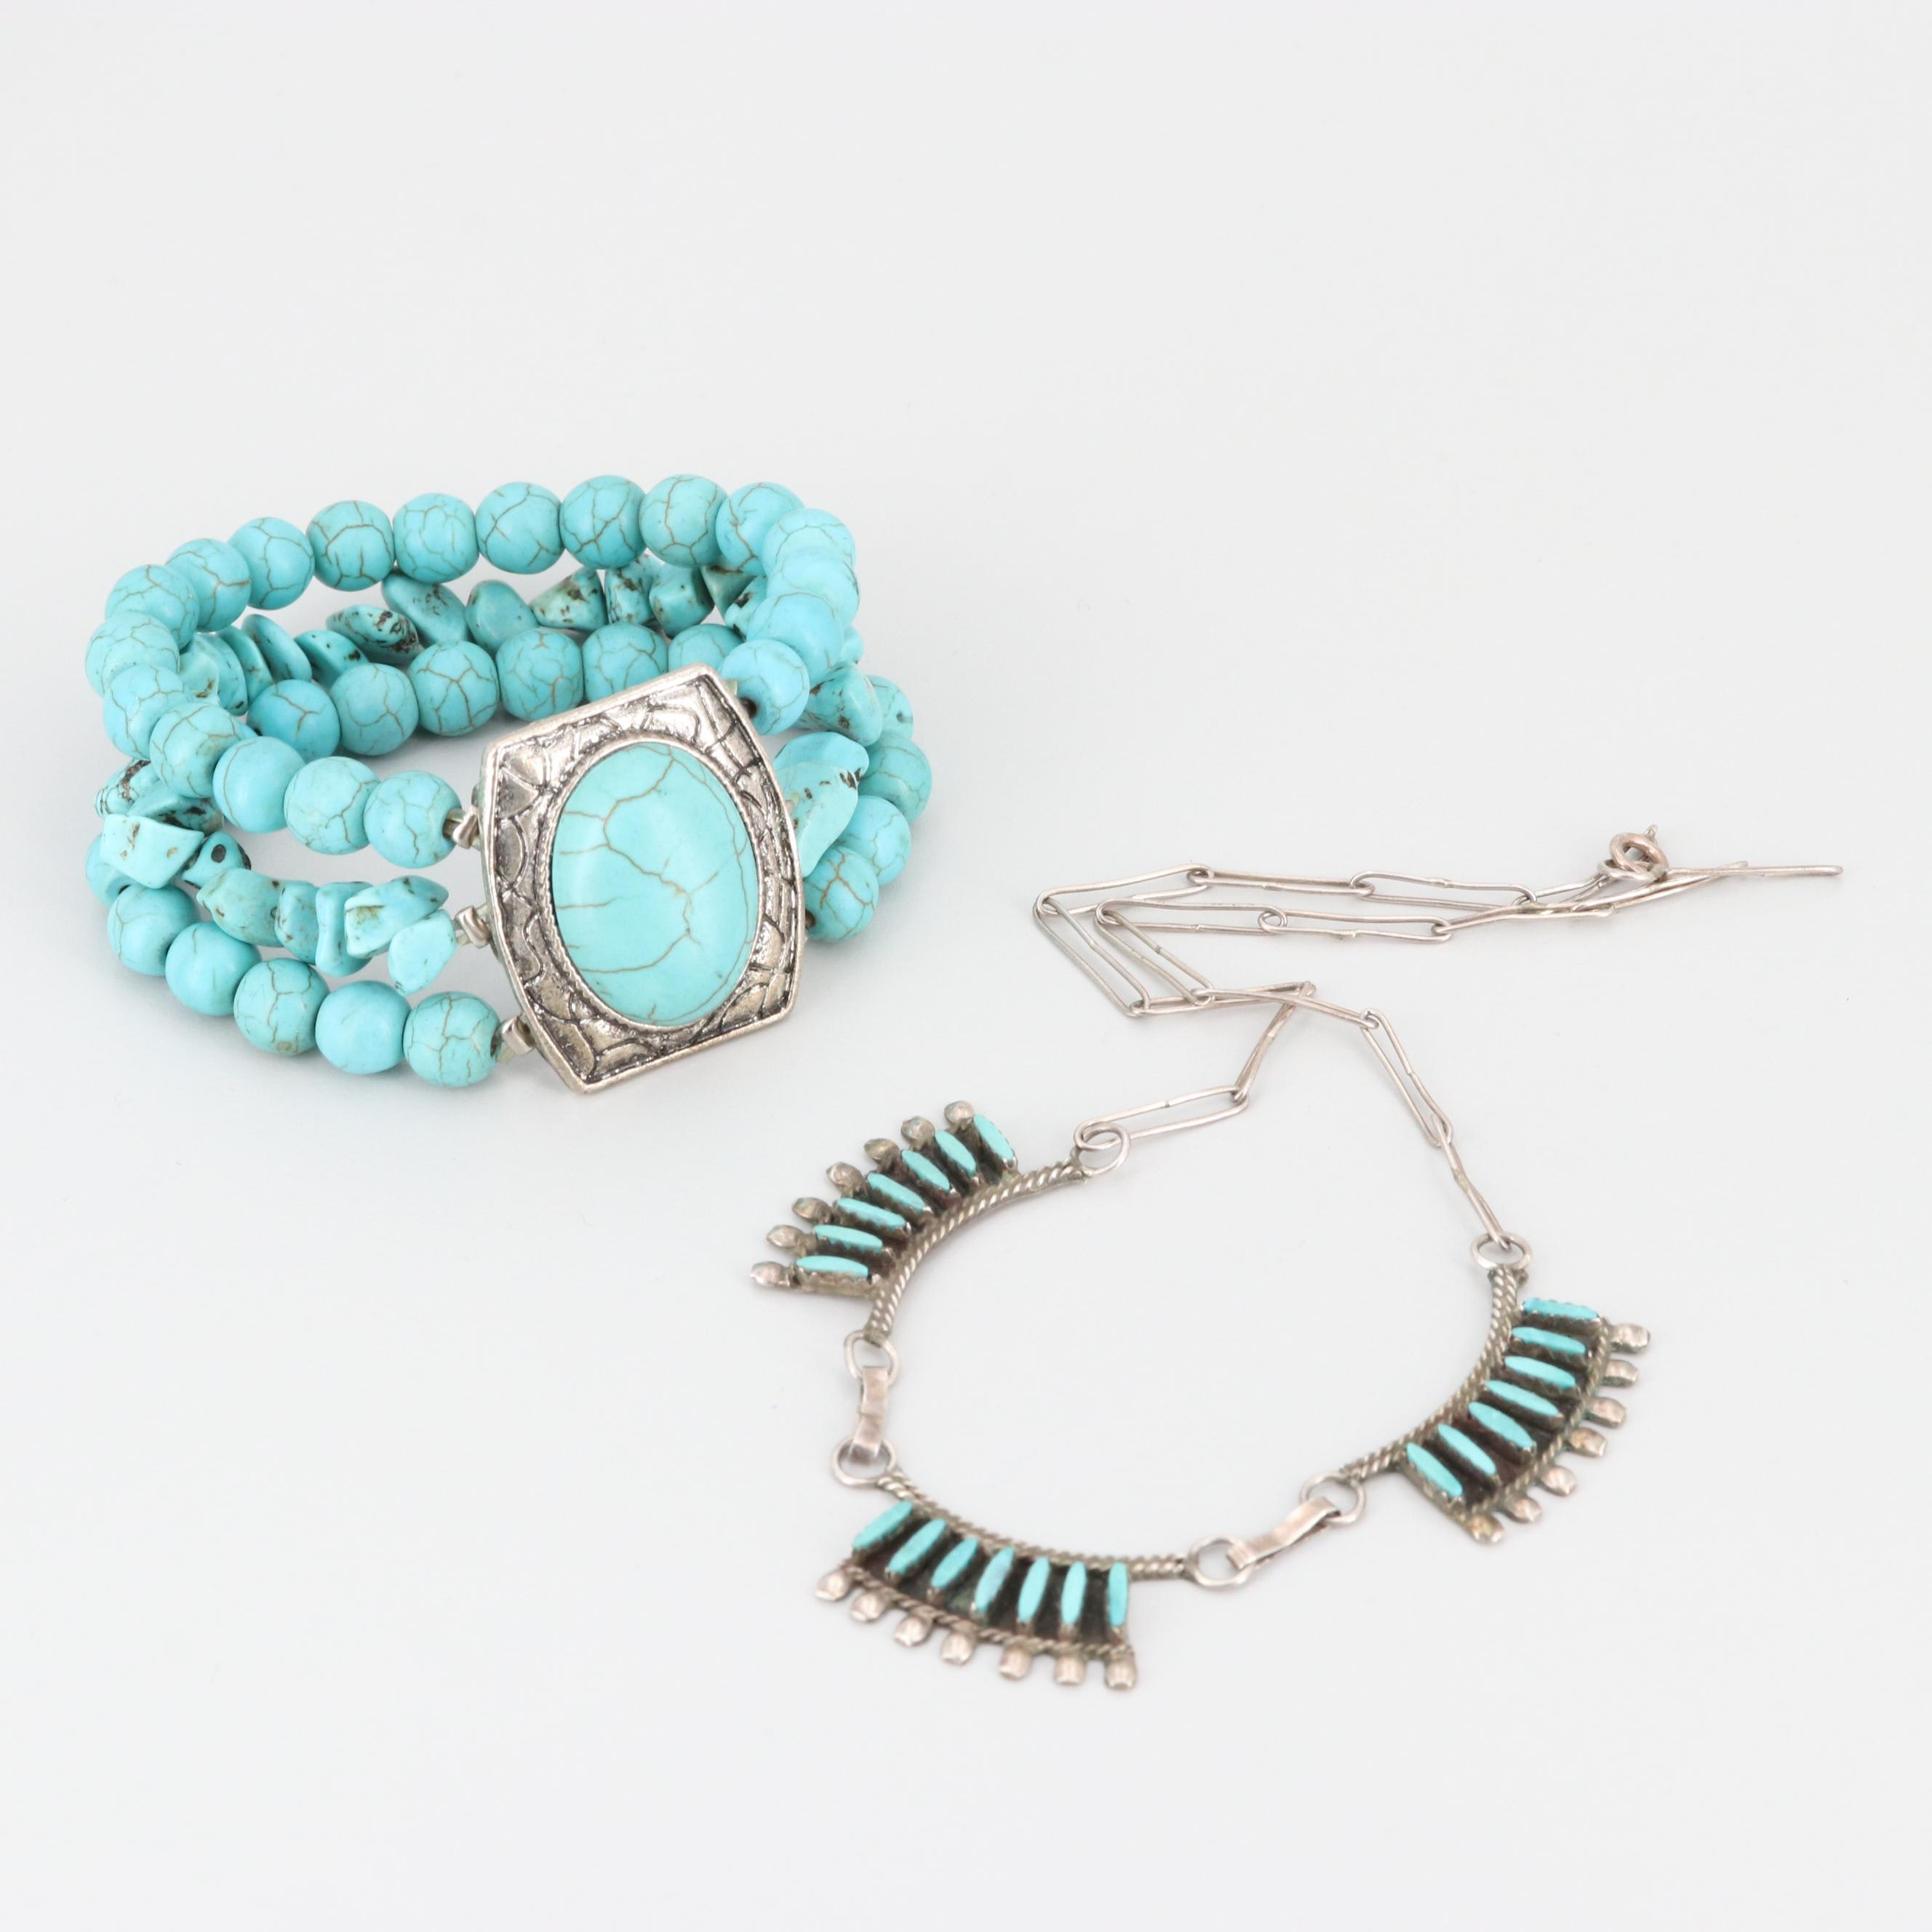 Sterling Silver Imitation Turquoise Necklace and Silver Tone Bracelet